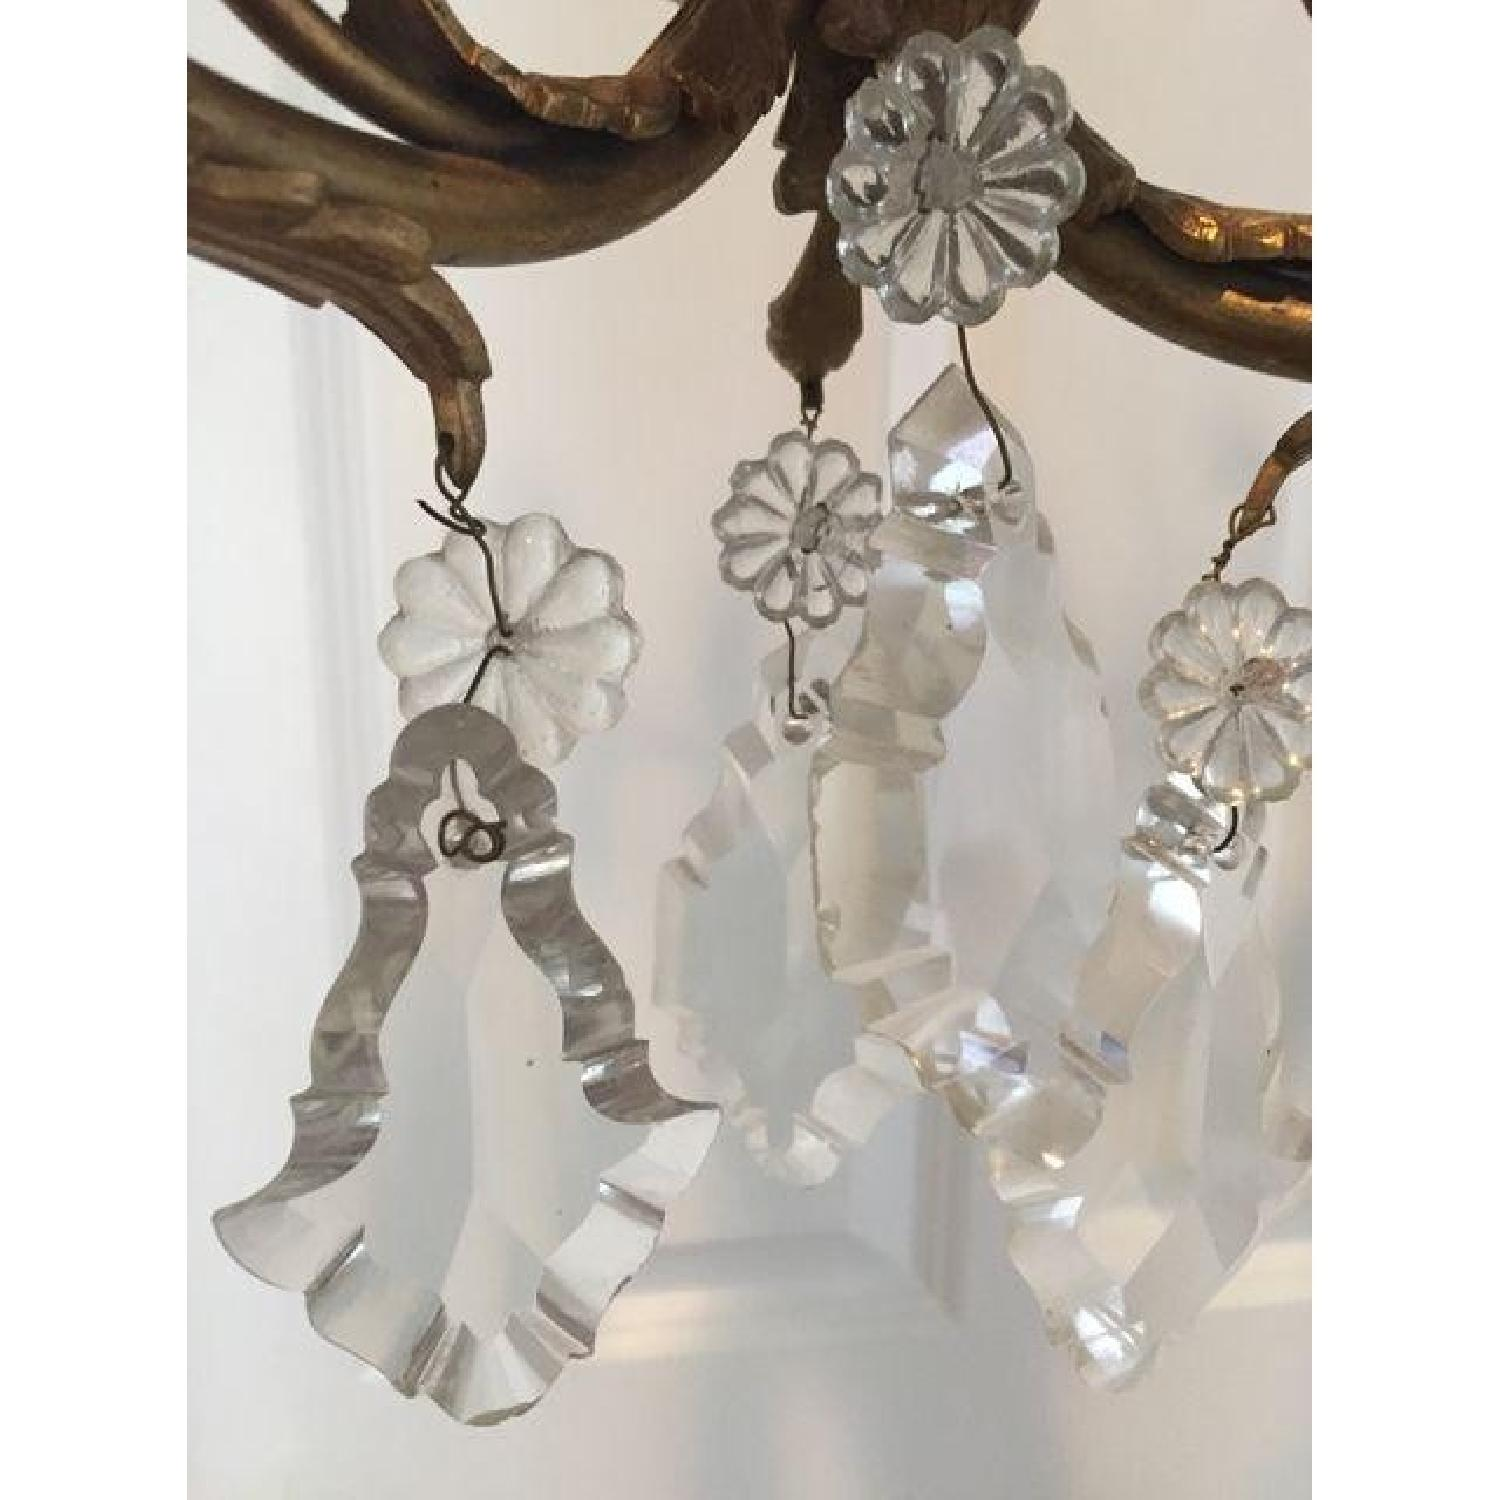 Antique French Wall Sconces - image-1